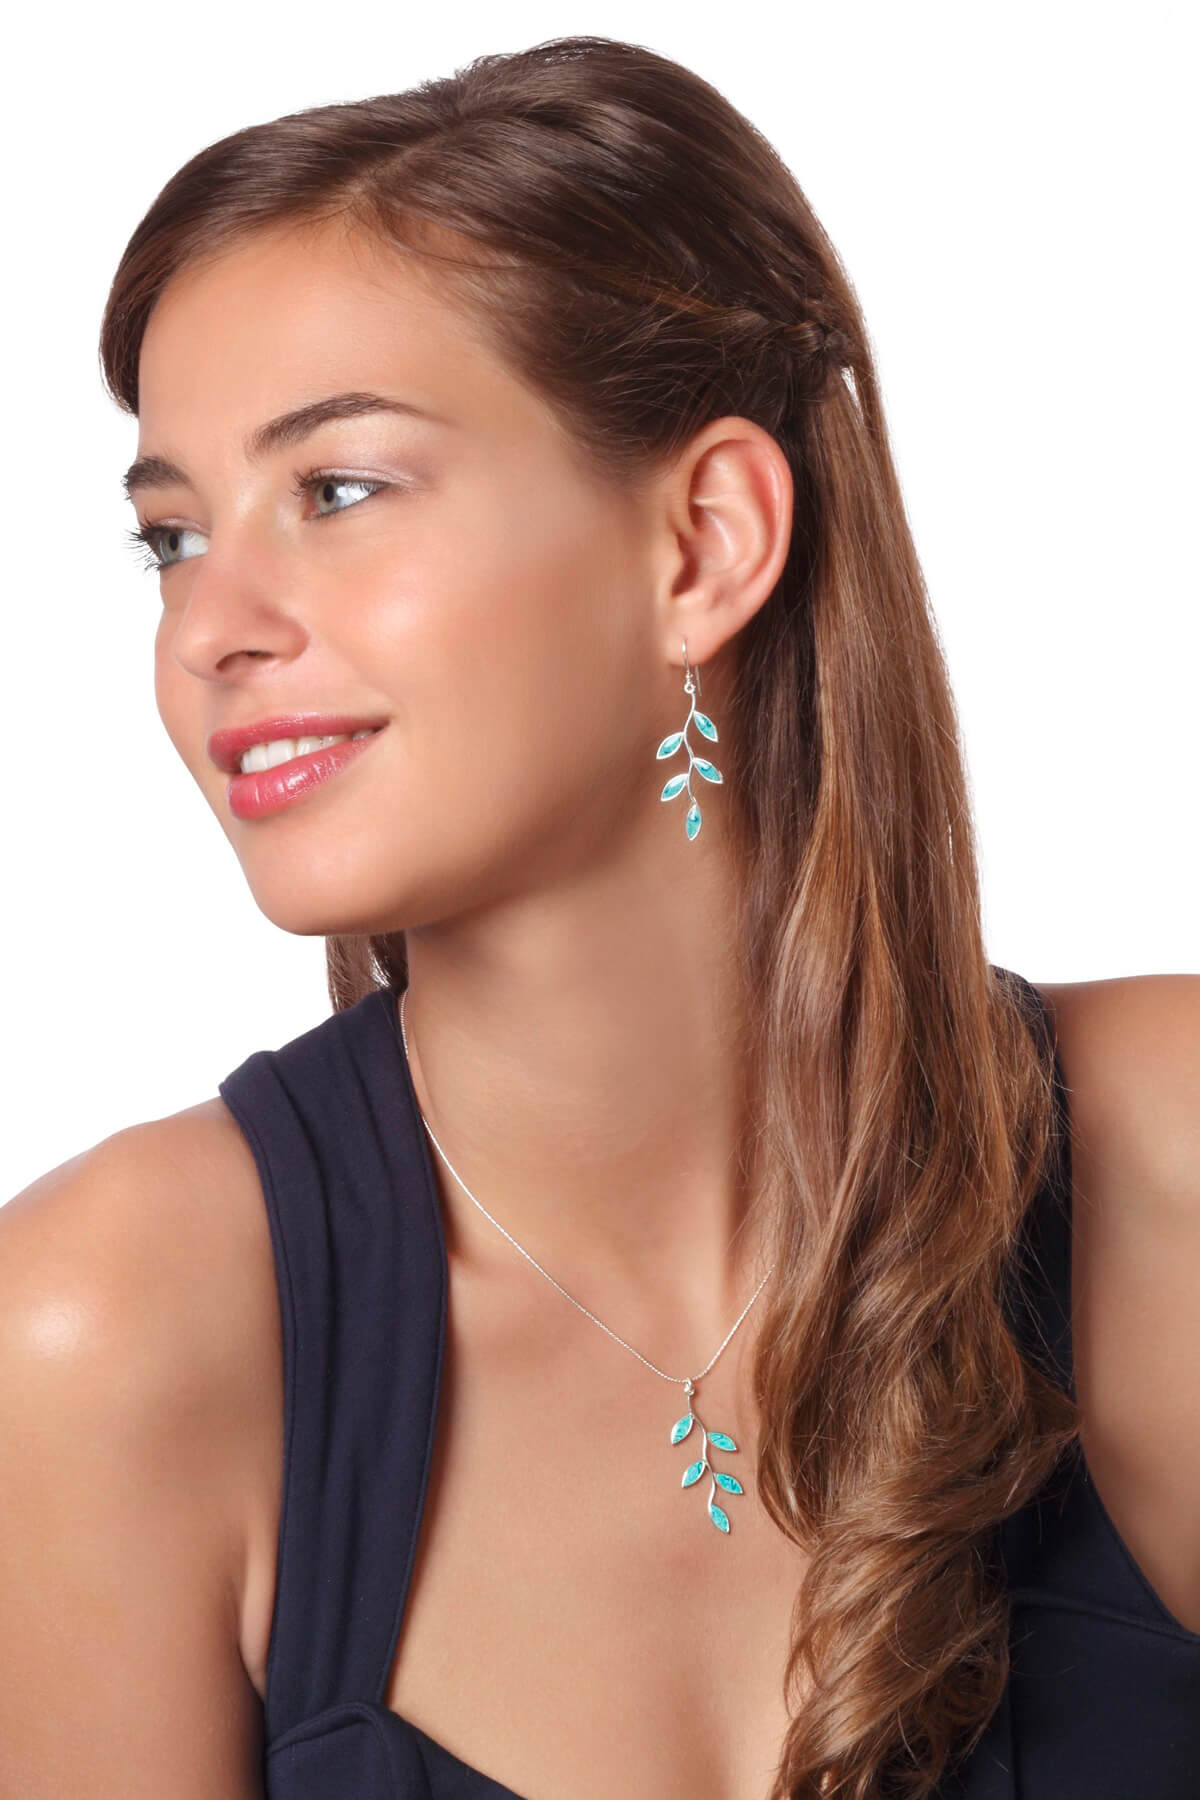 Handmade Silver Olive Leaf Earrings and Necklace -Turquoise Pattern